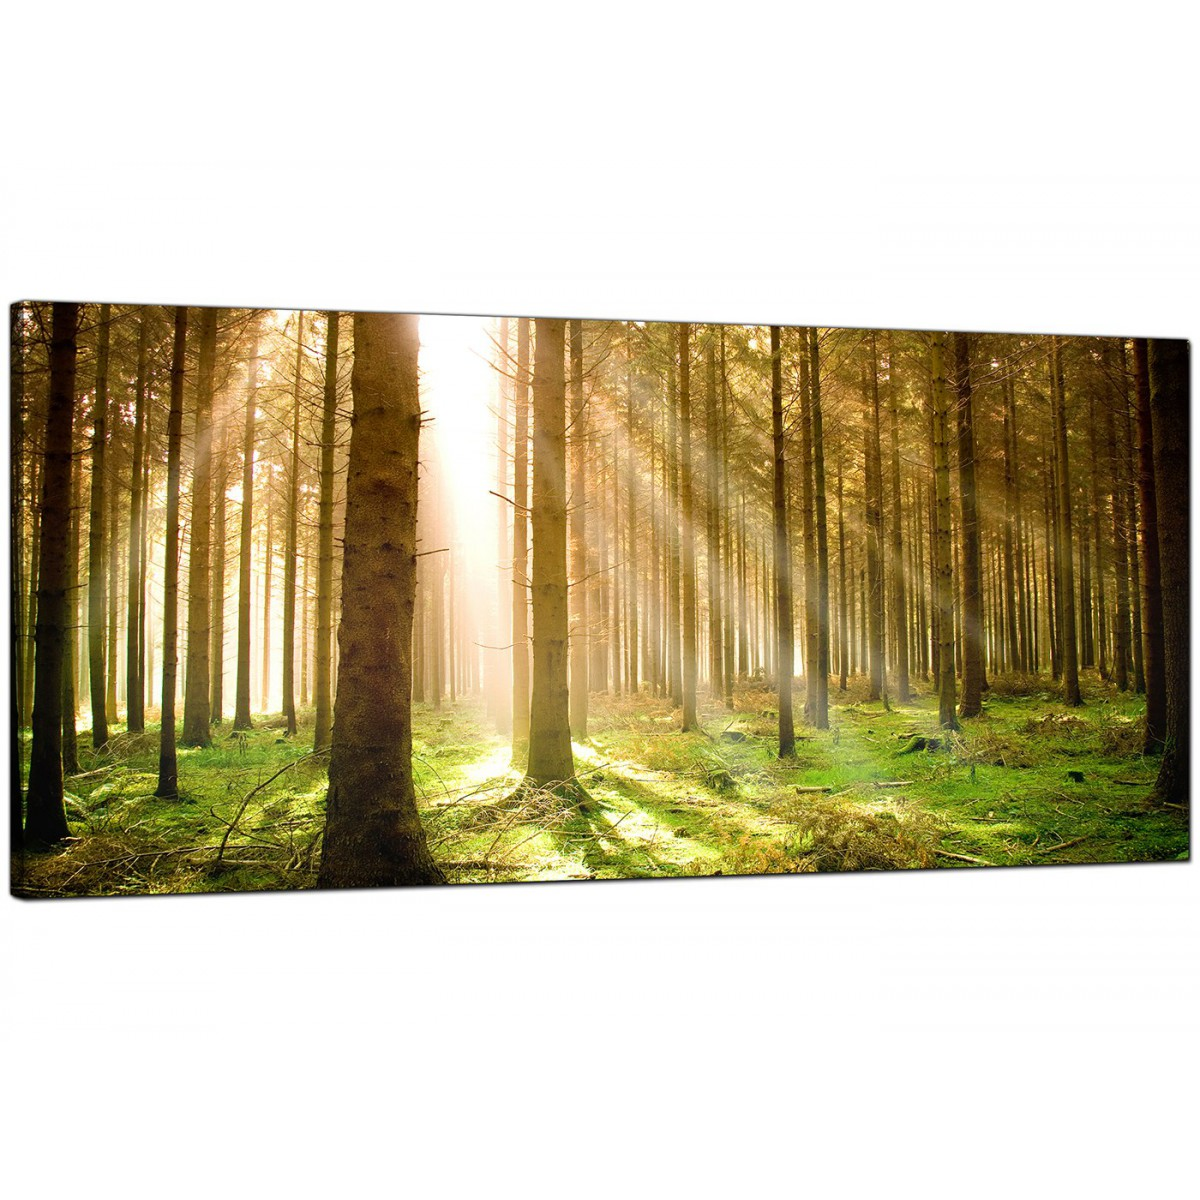 Wall Art Trees Green : Modern canvas prints of forest trees for your dining room